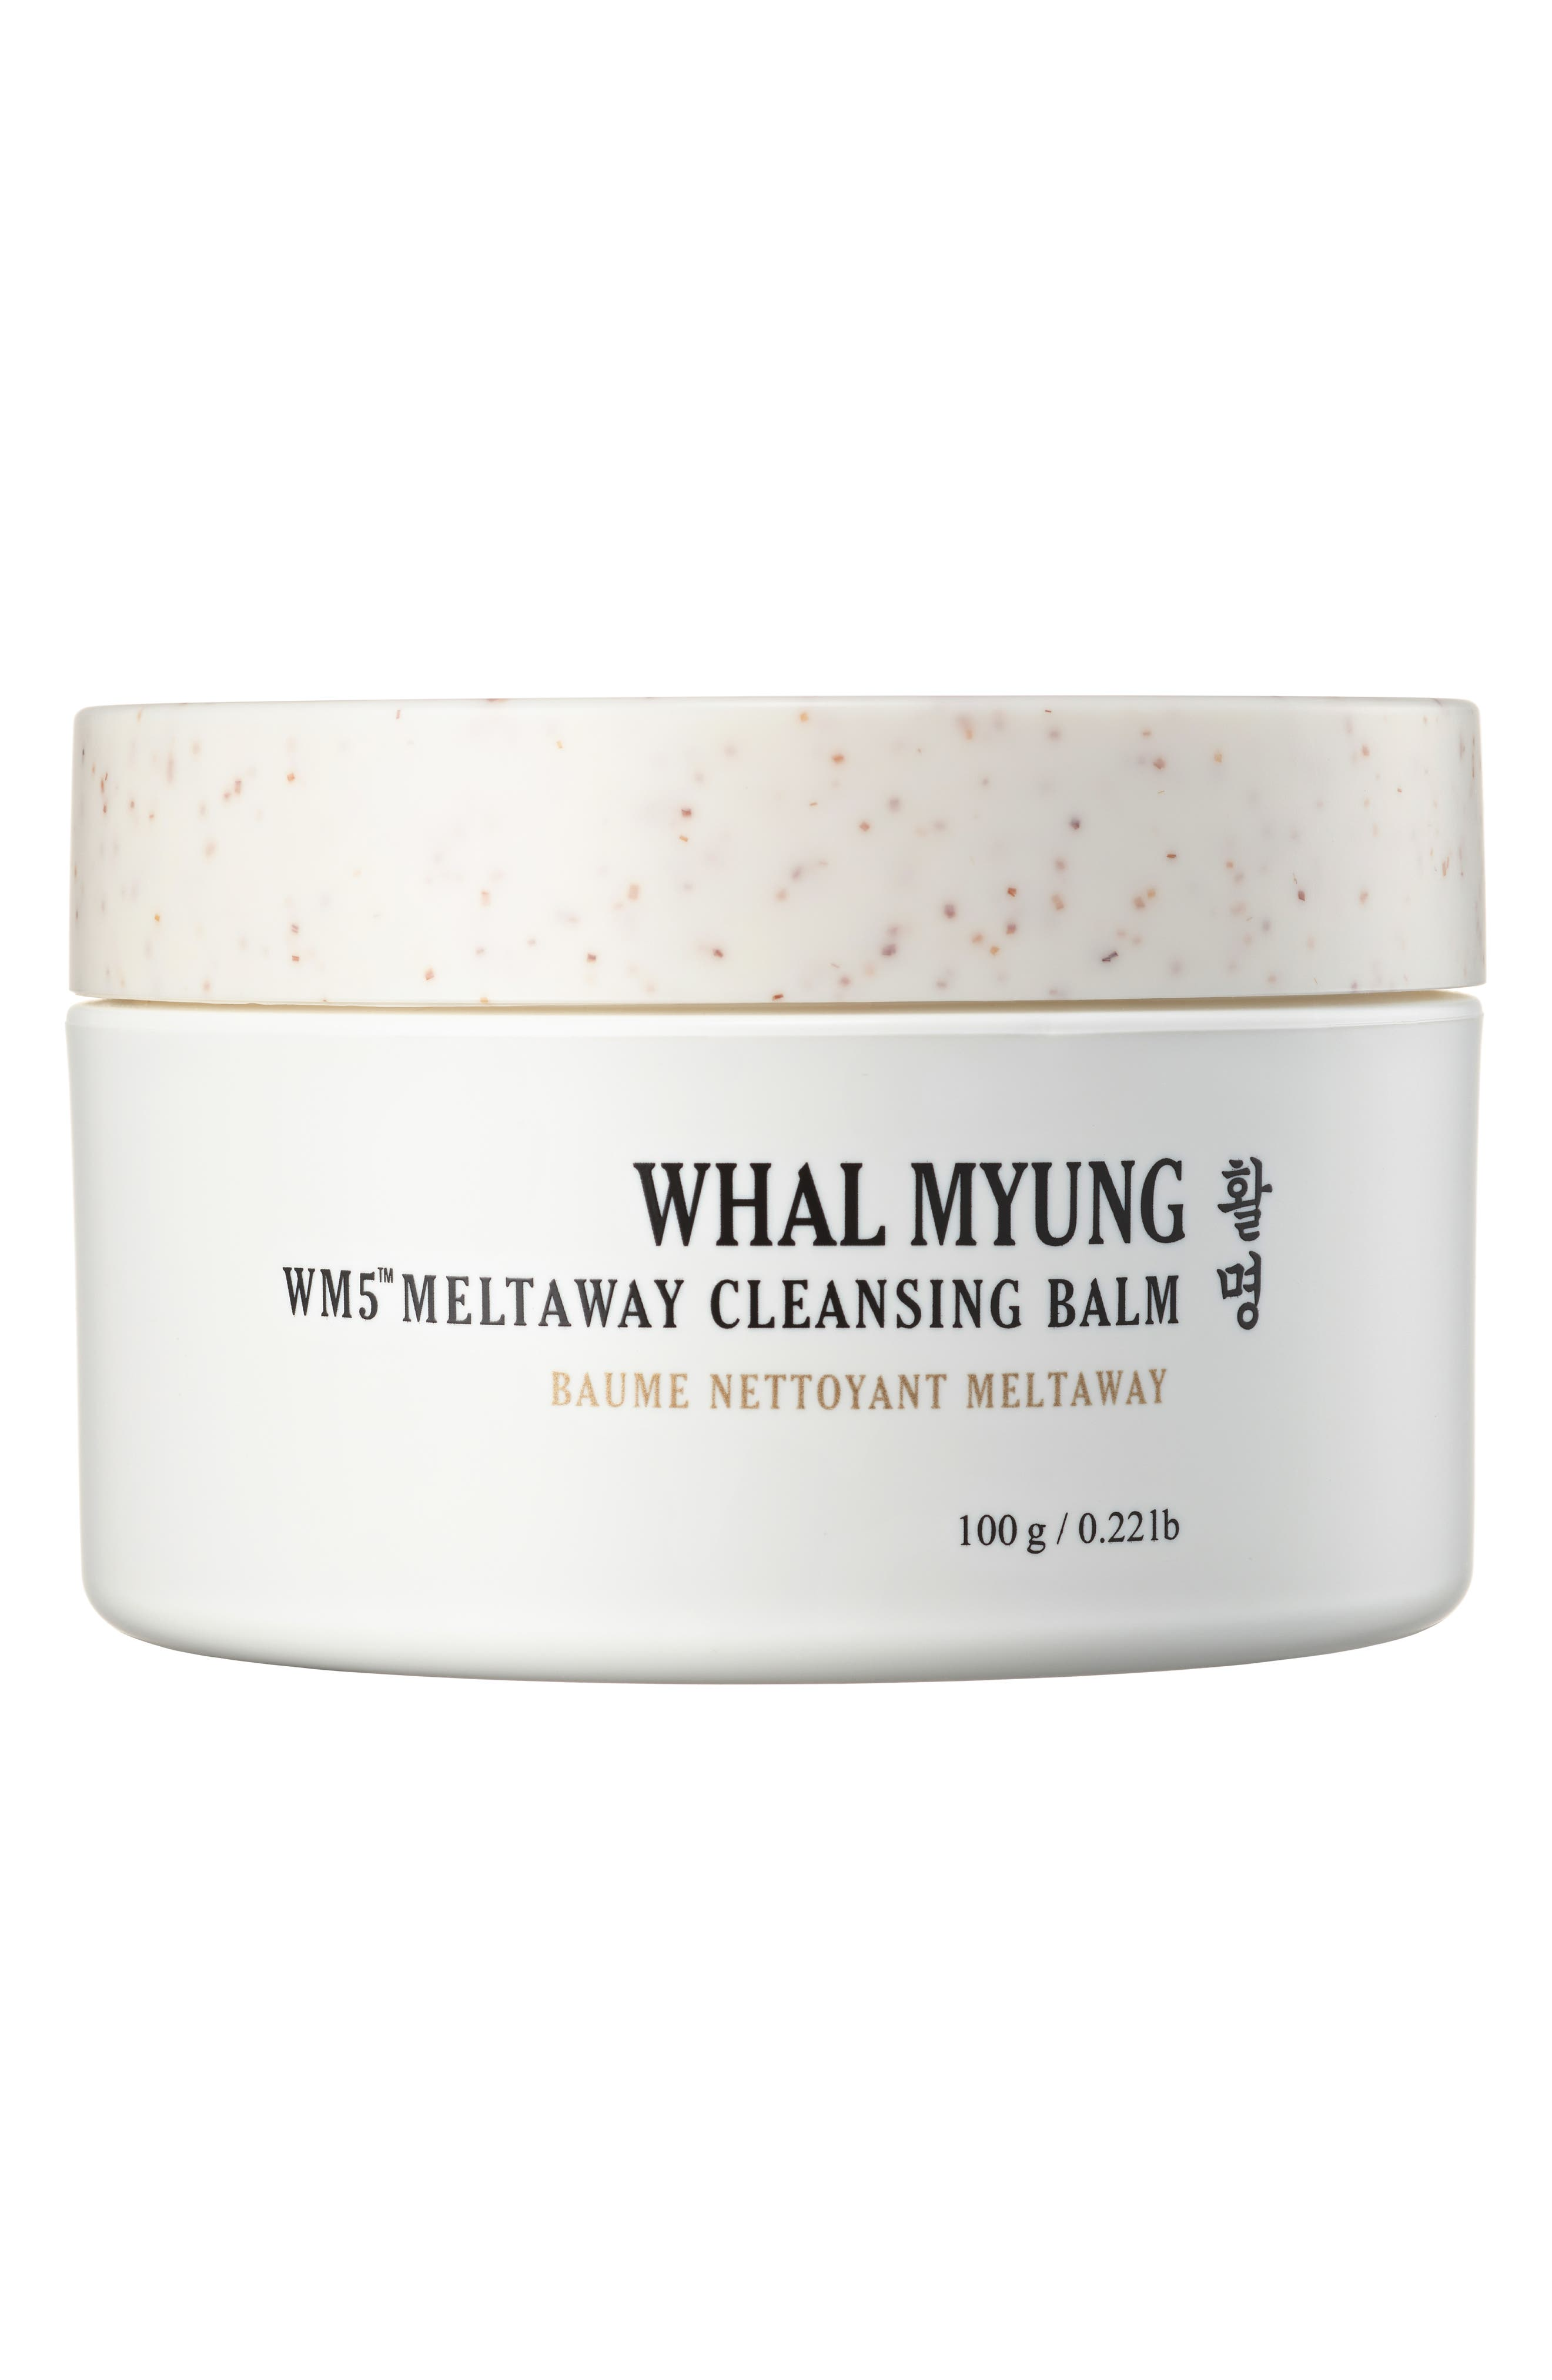 Humongousmallbeauty And Cosmetics Nature Republic Himalaya Salt Cleansing Balm Pink Whal Myung Meltaway